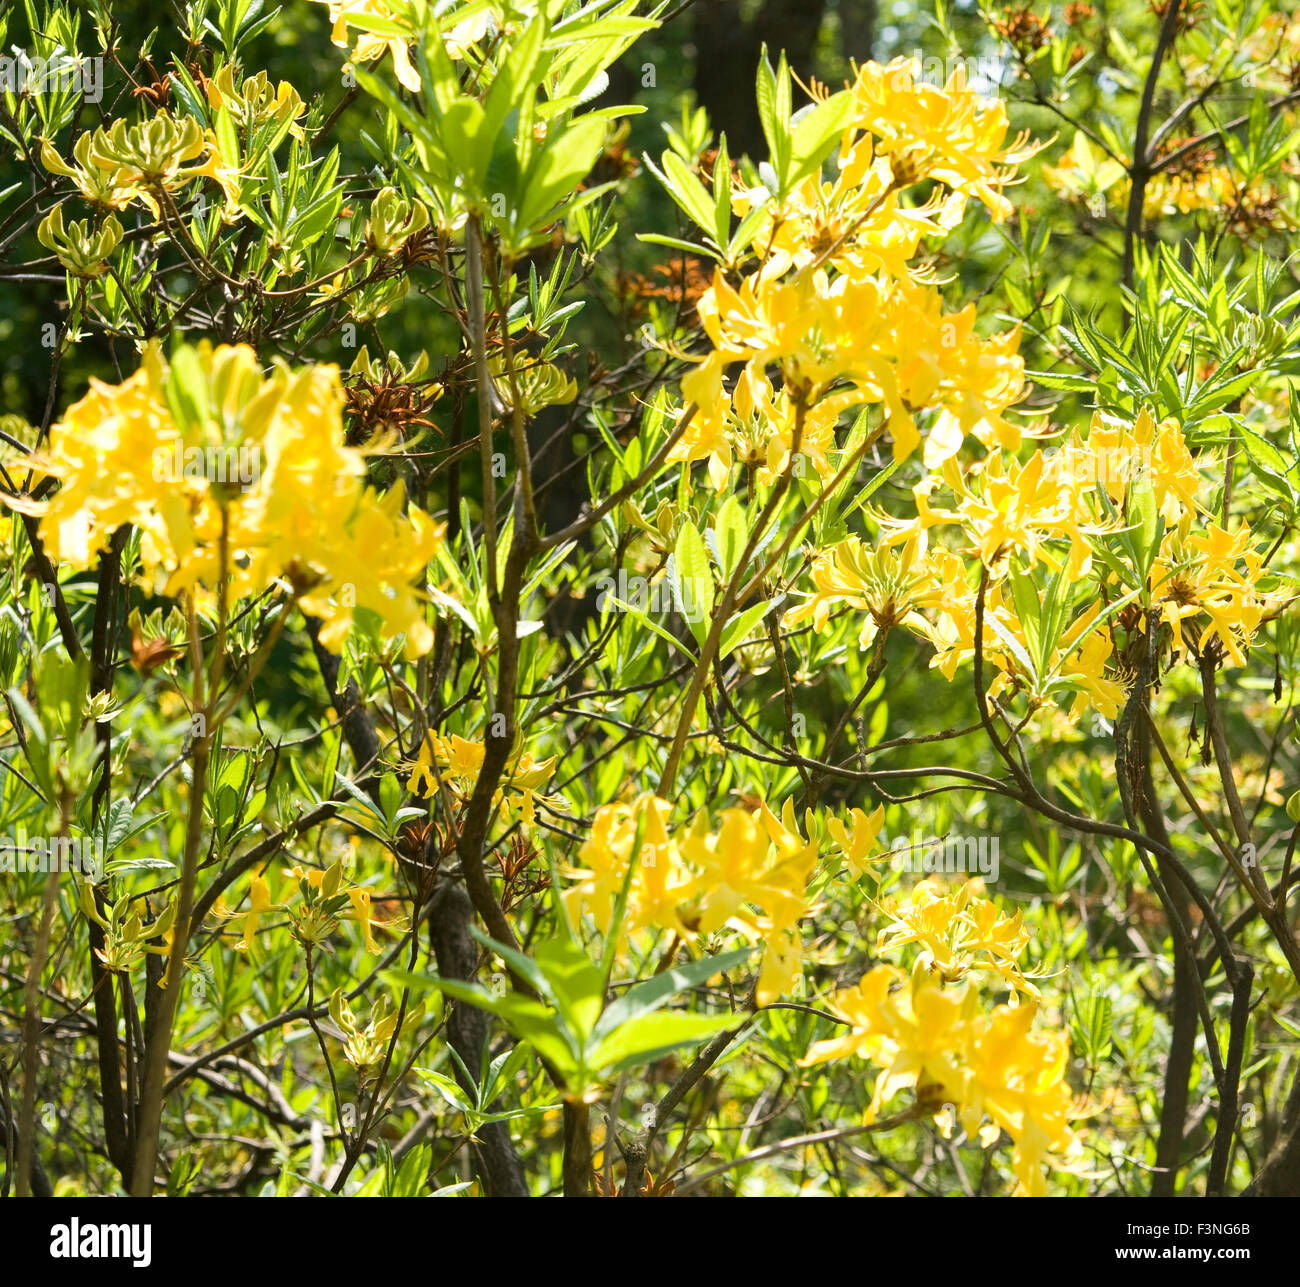 Branches Of Rhododendron Plant With Flowers Of Yellow Colour Stock